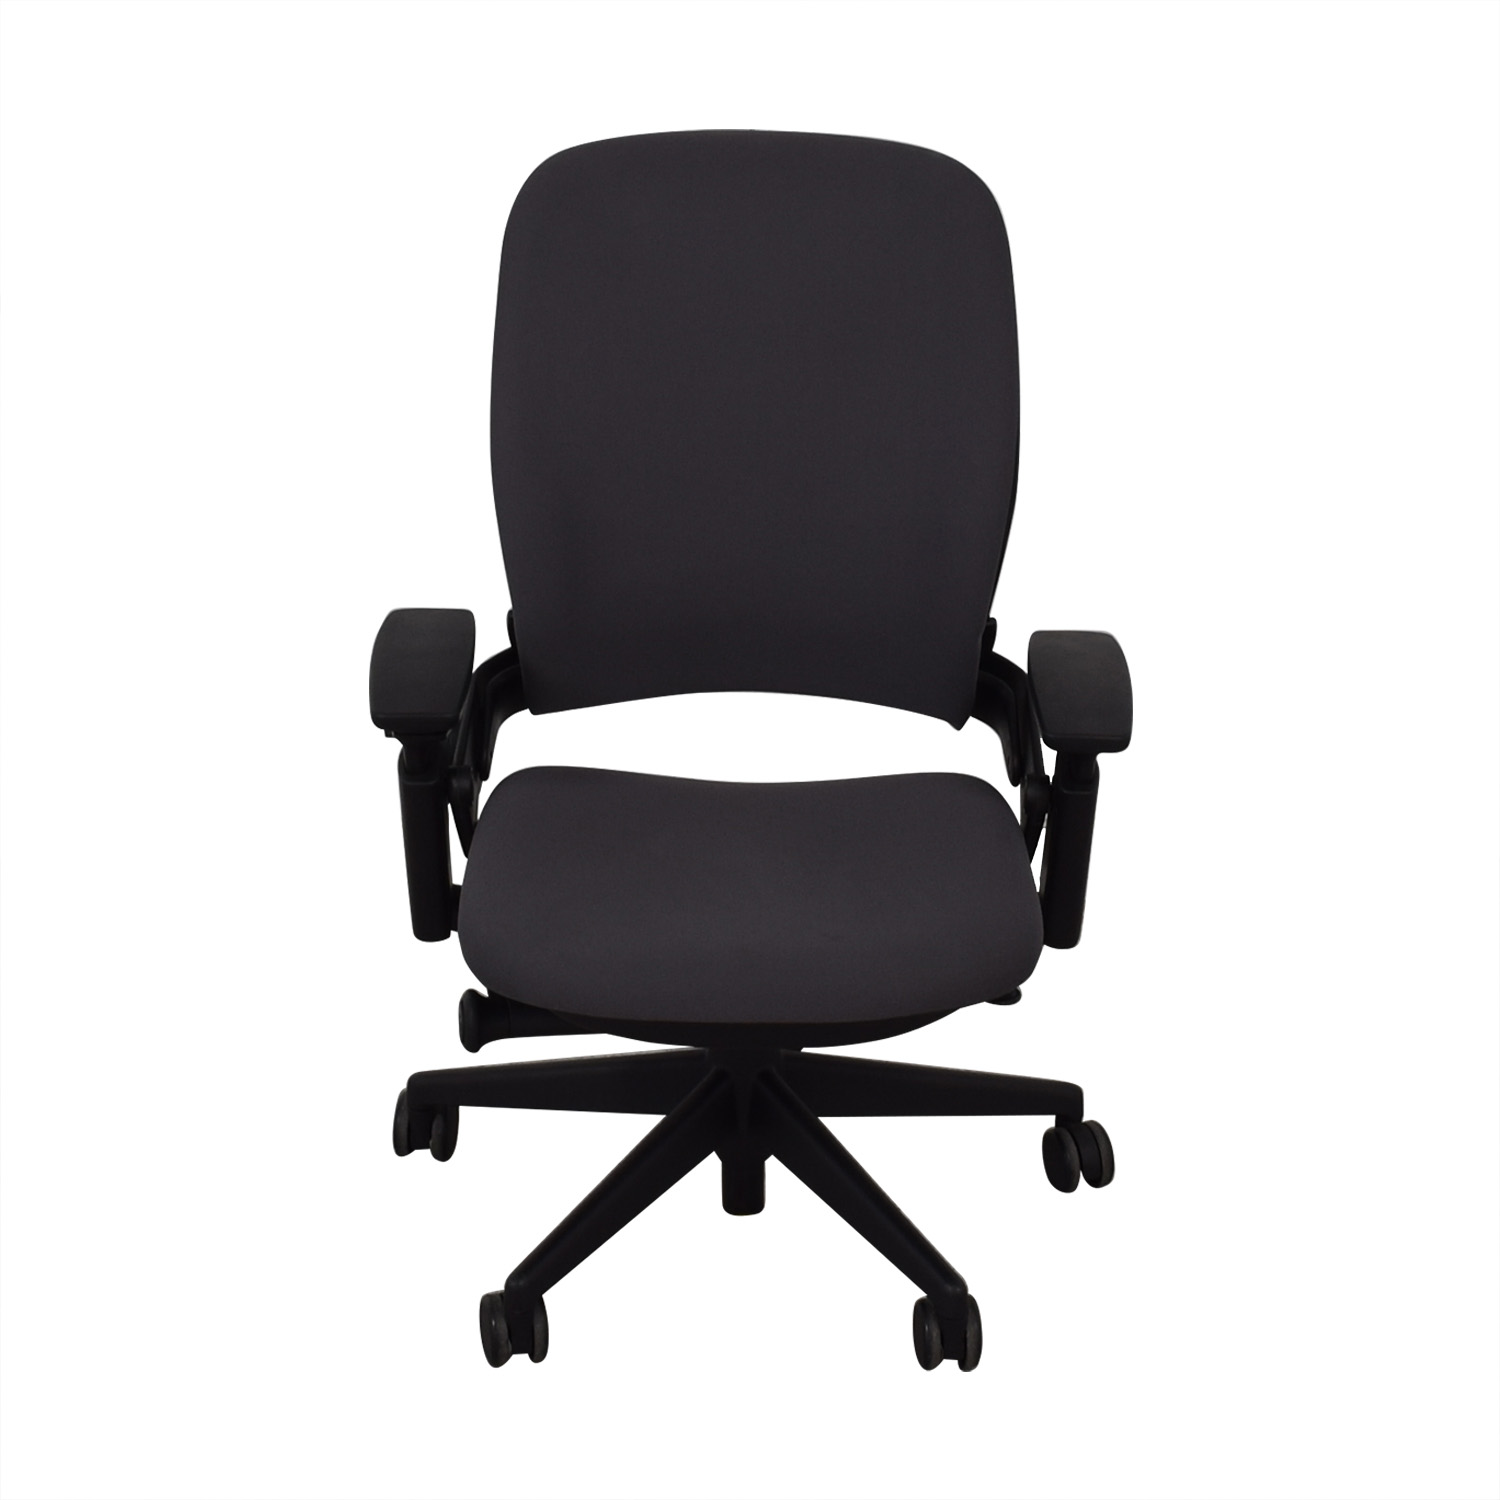 Steelcase Steelcase Leap V2 Office Chair Home Office Chairs